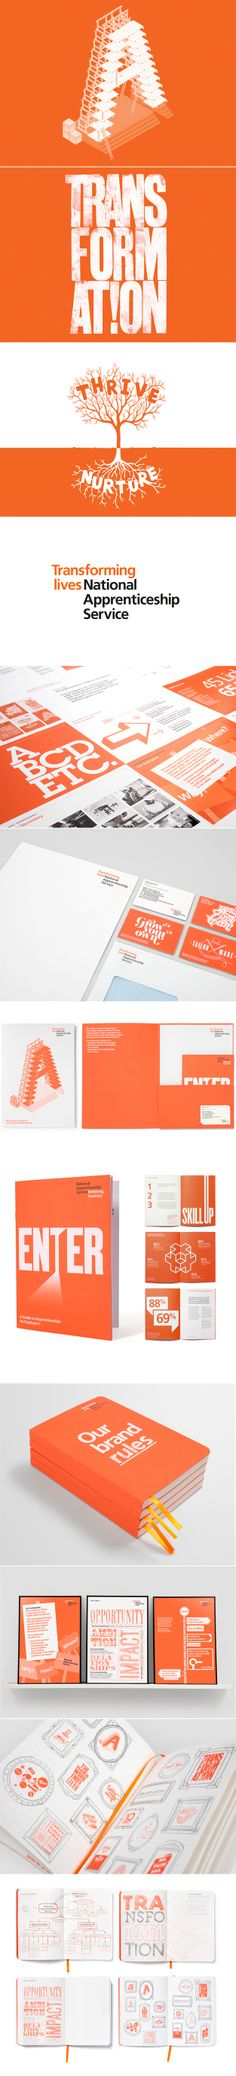 Single-color printing by National Apprenticeship Service – Identity by Purpose, London